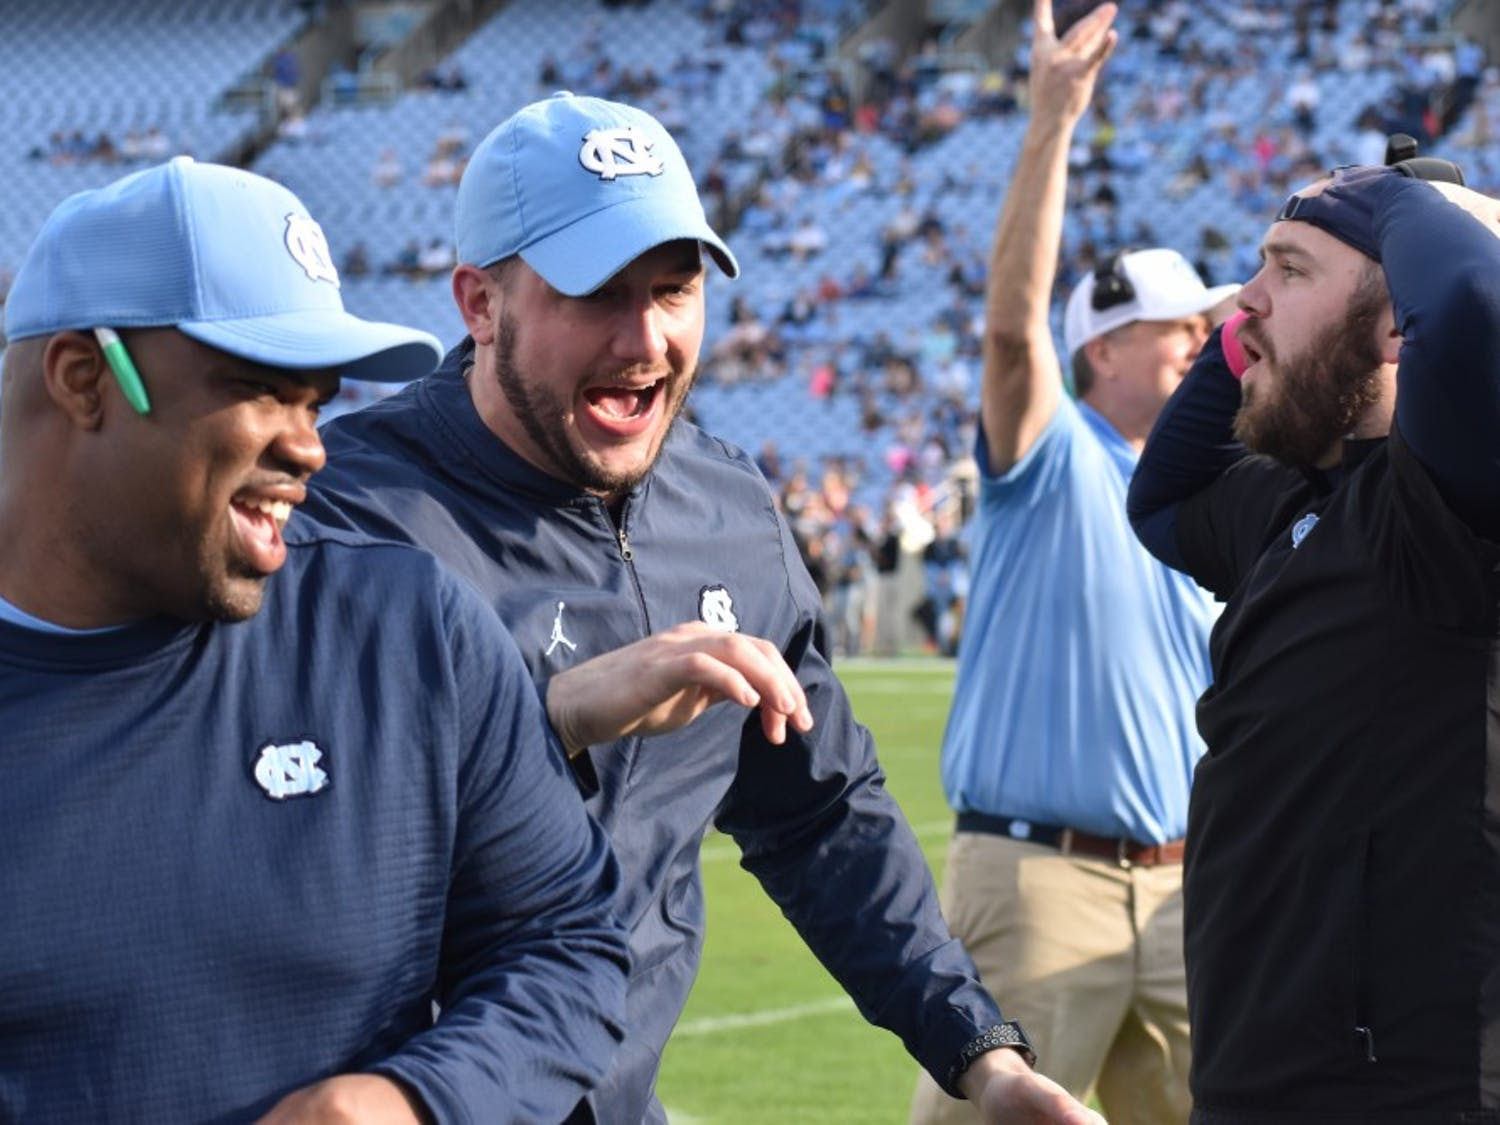 Two UNC football staff members celebrate and one expresses disappointment as the defense team scored a touchdown following a fumble by first-year running back Devon Lawrence (3) and first-year defensive back Storm Duck (29) sprinted 44 yards to the end zone in the Spring Football Game on April 13, 2019 in Kenan Stadium. The Carolina team defeated the Tar Heel team 25-10